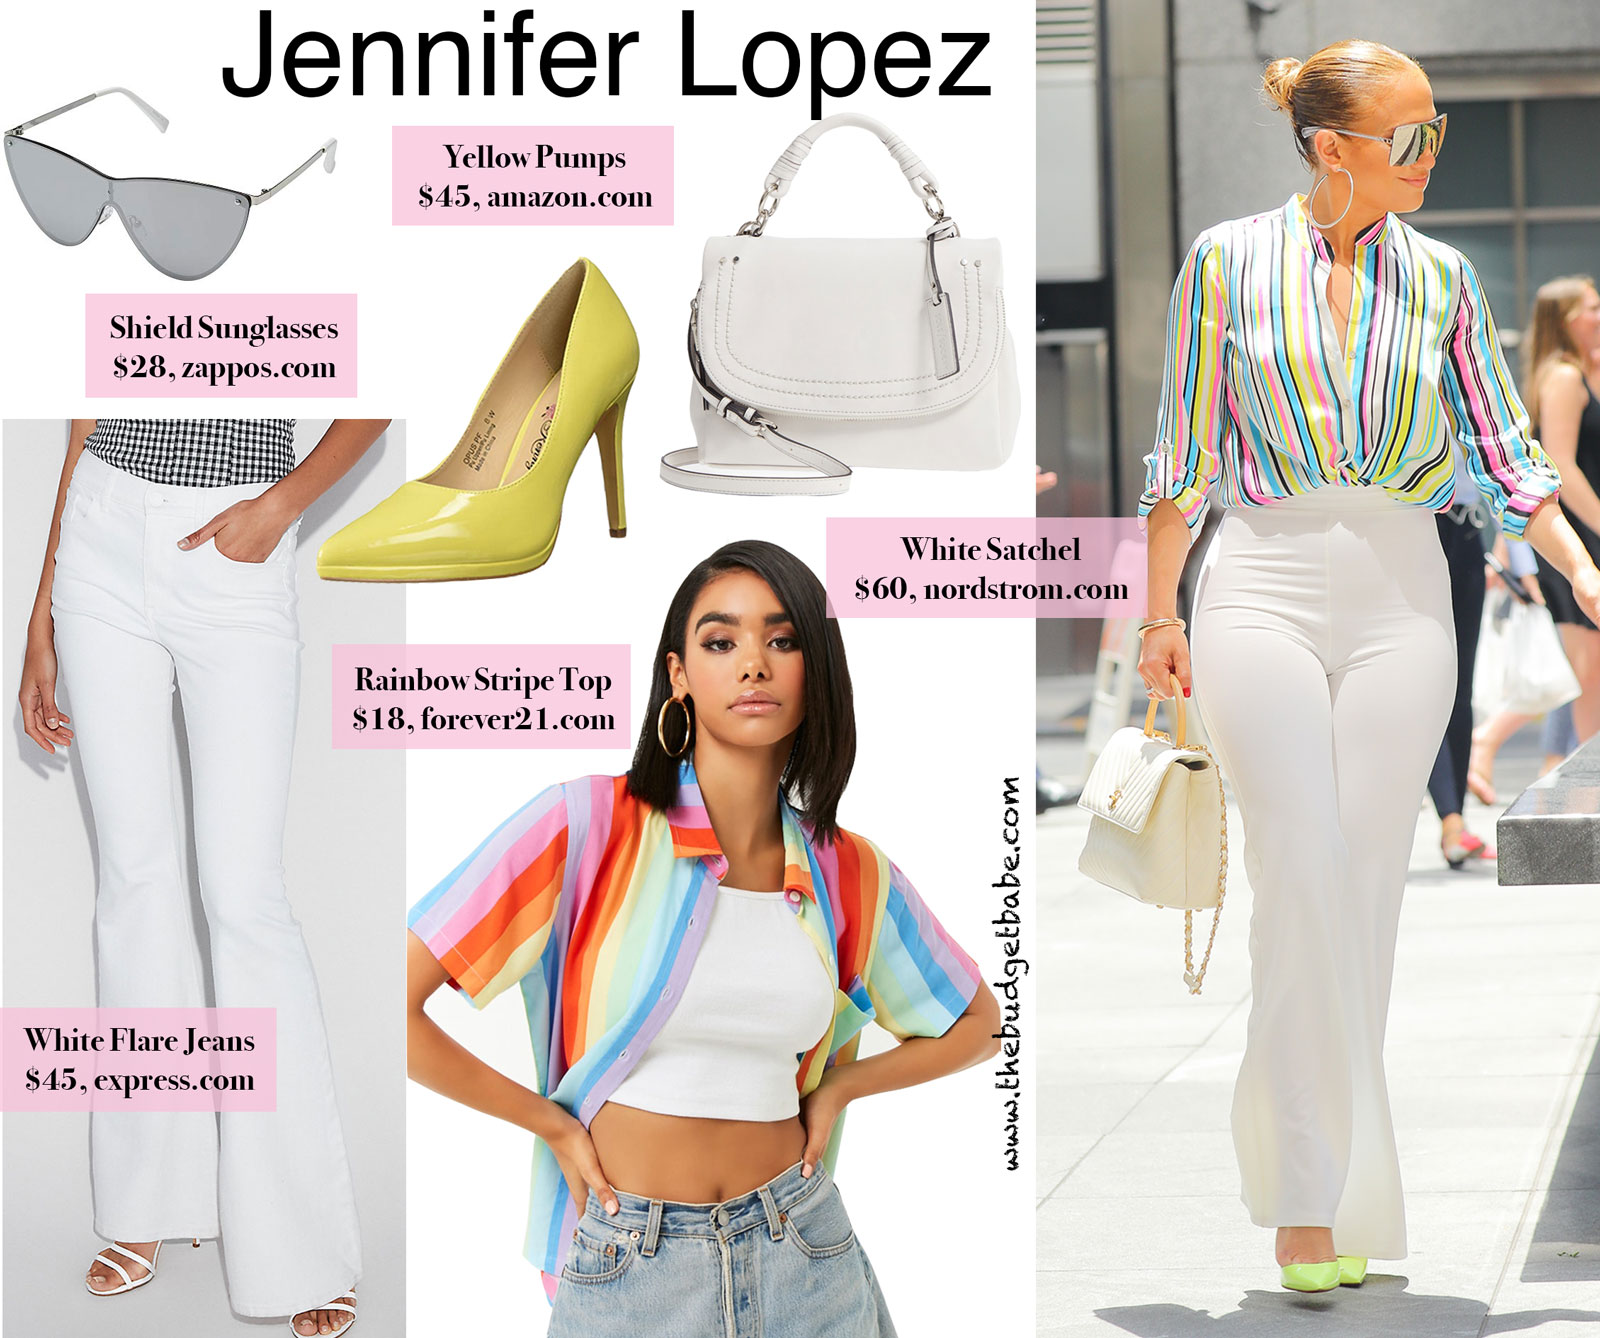 87f8347a232 Jennifer Lopez s Rainbow Striped Top and White Flare Pants.